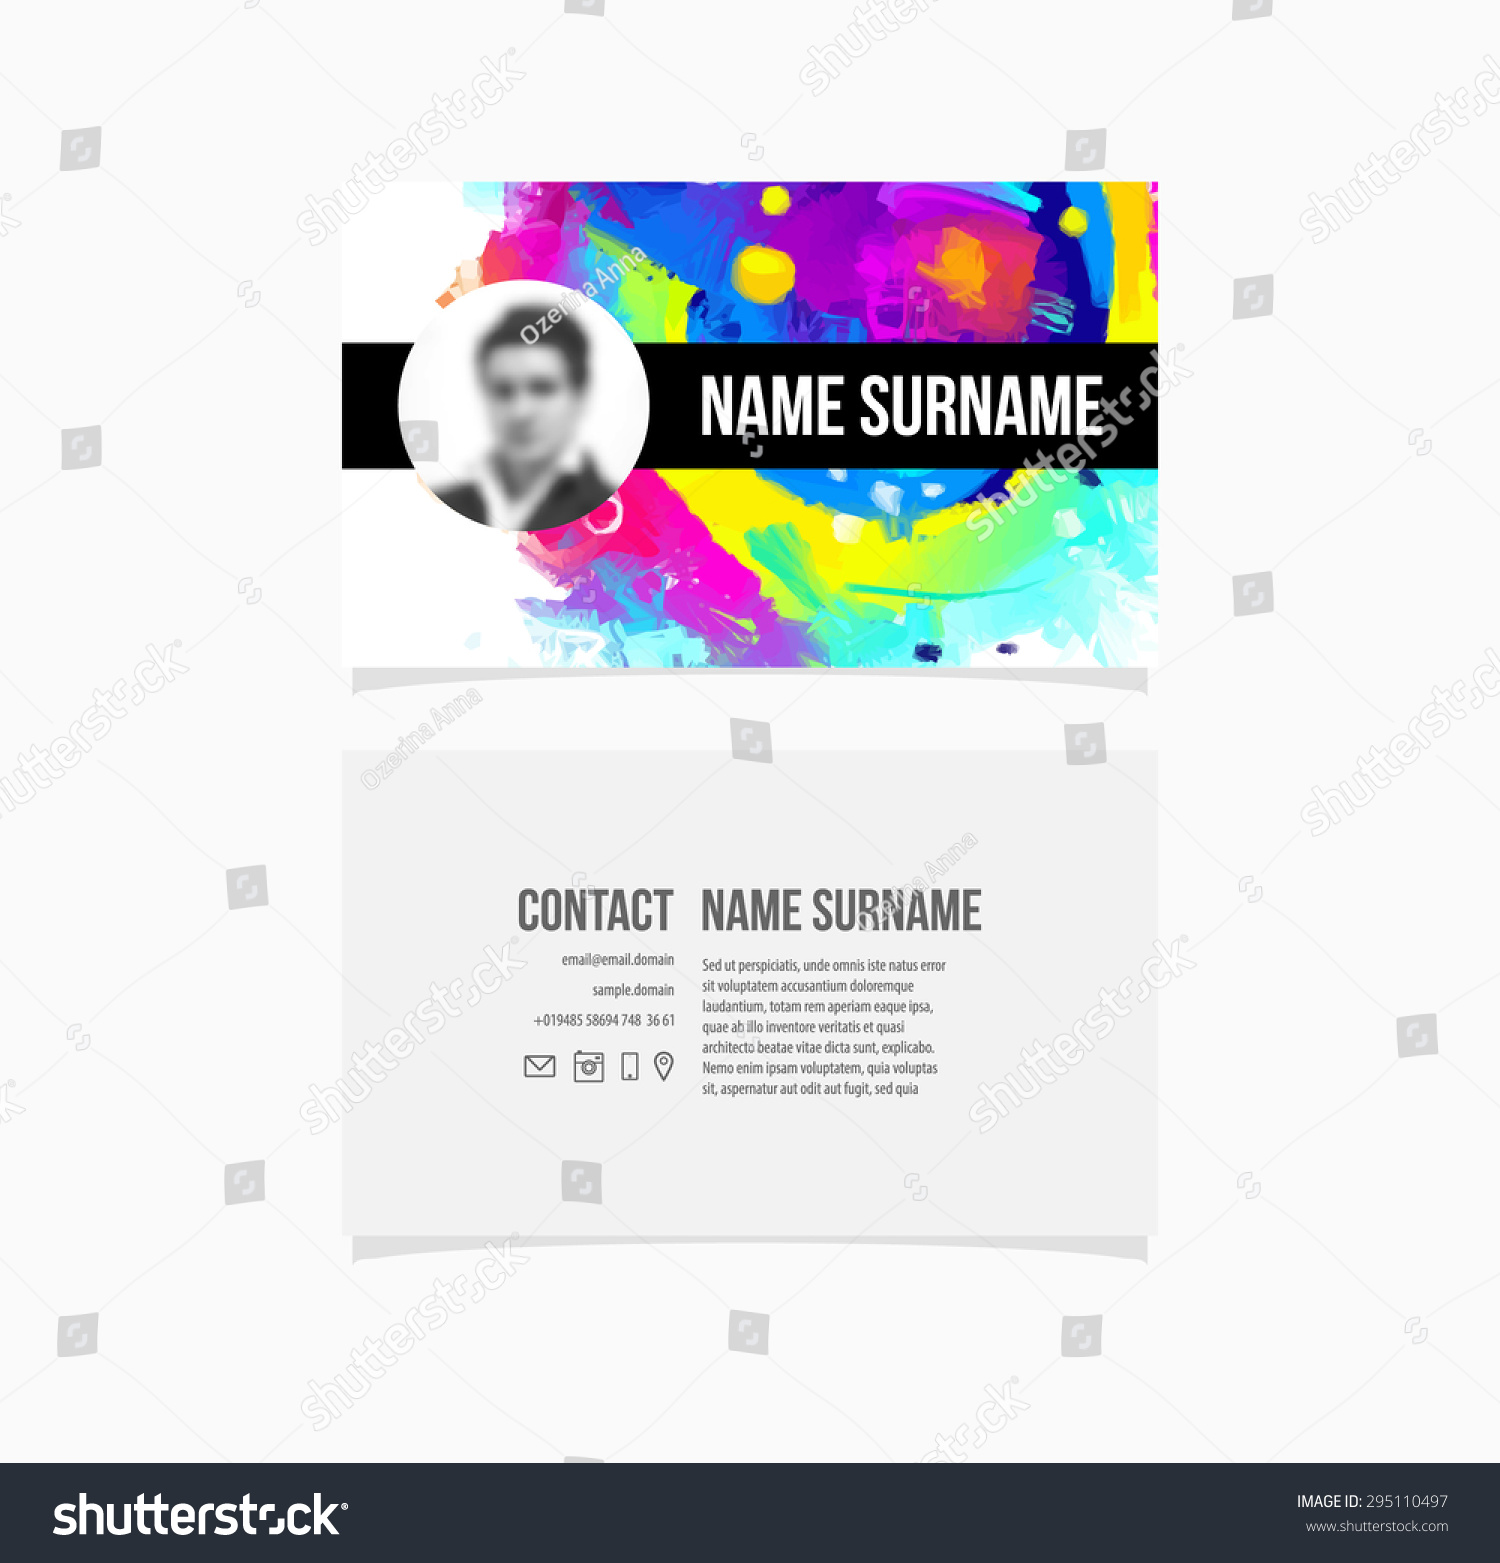 Scentsy Business Card Template Images - Templates Example Free ...